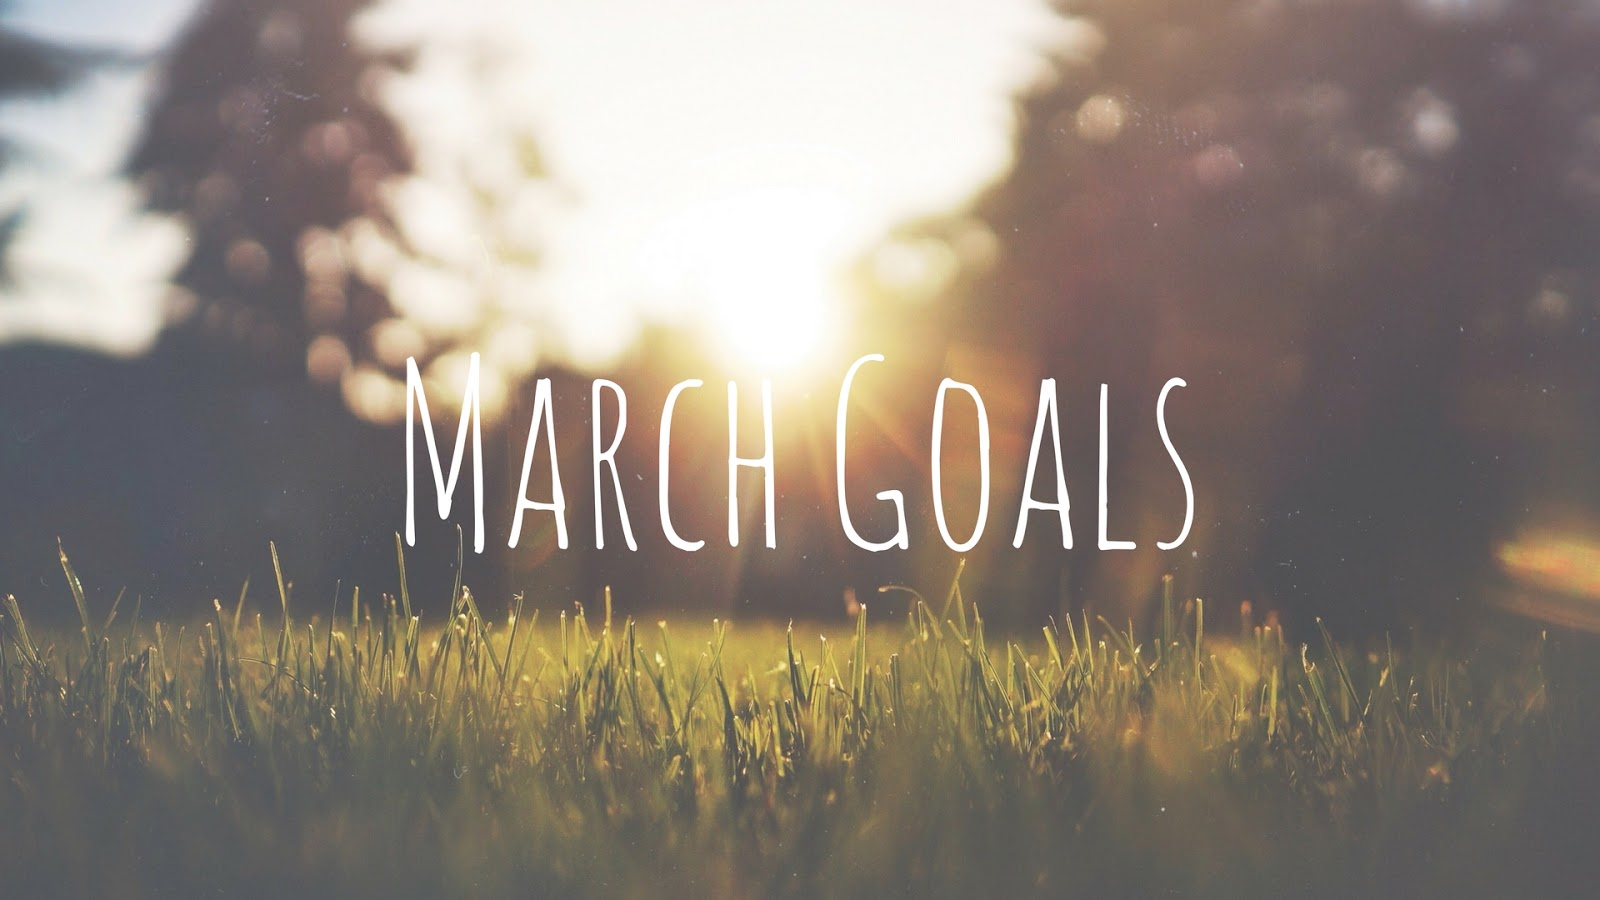 holiday, goals, target, lifestyle, fitness, spring, birthday, fundraising, charity, sponsor